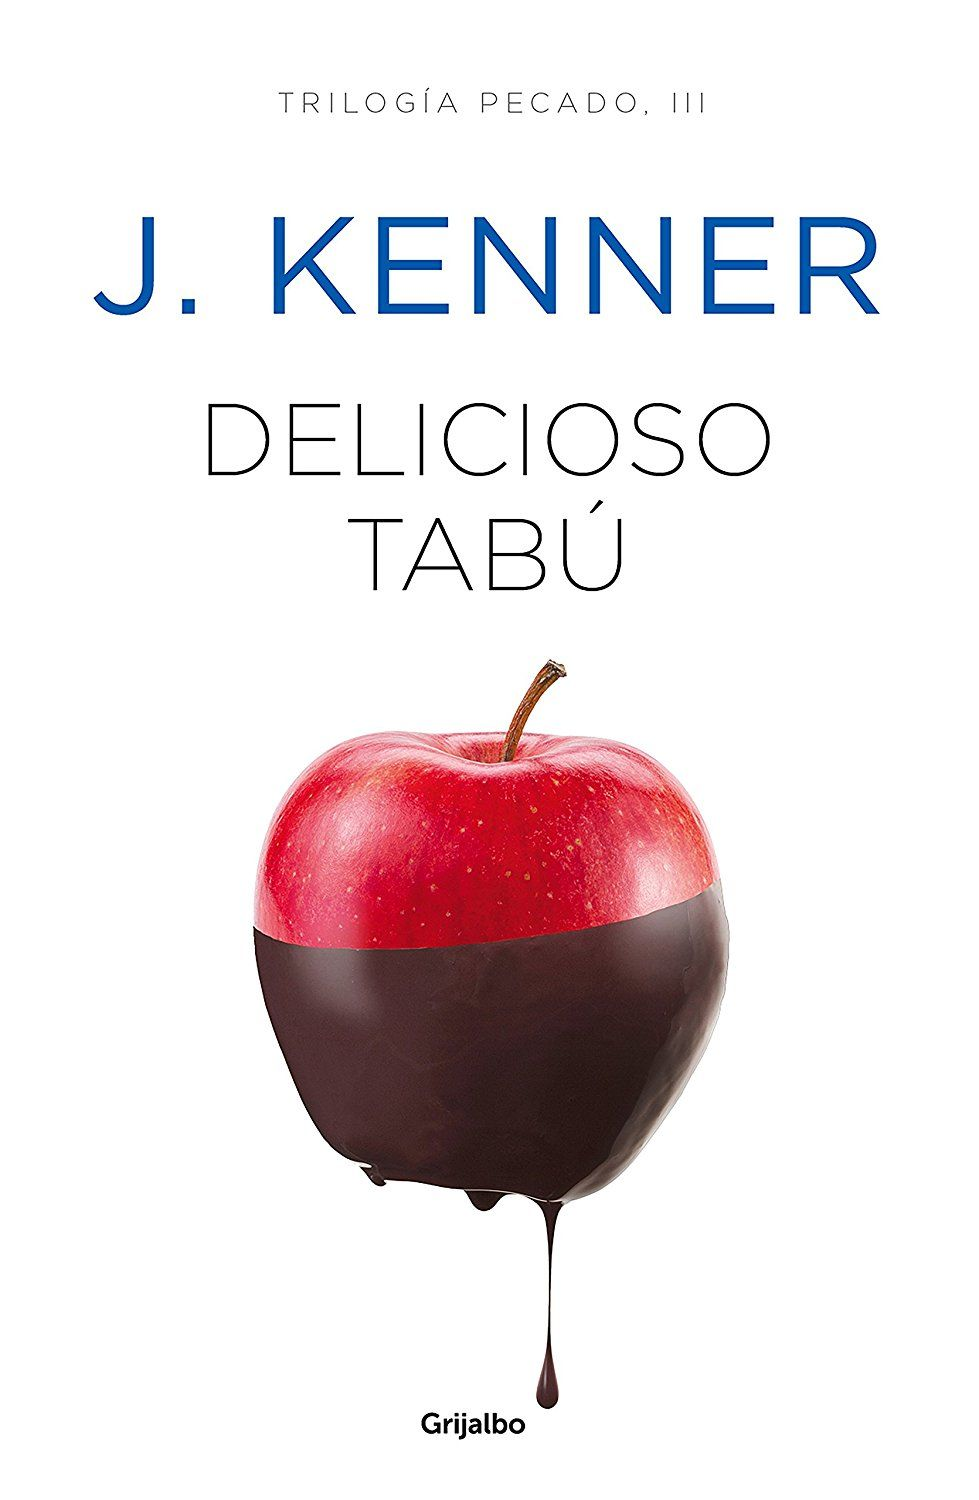 Kindle Descargar Libros Gratis Delicioso Tabú Trilogía Pecado 3 Ebook J Kenner Amazon Es